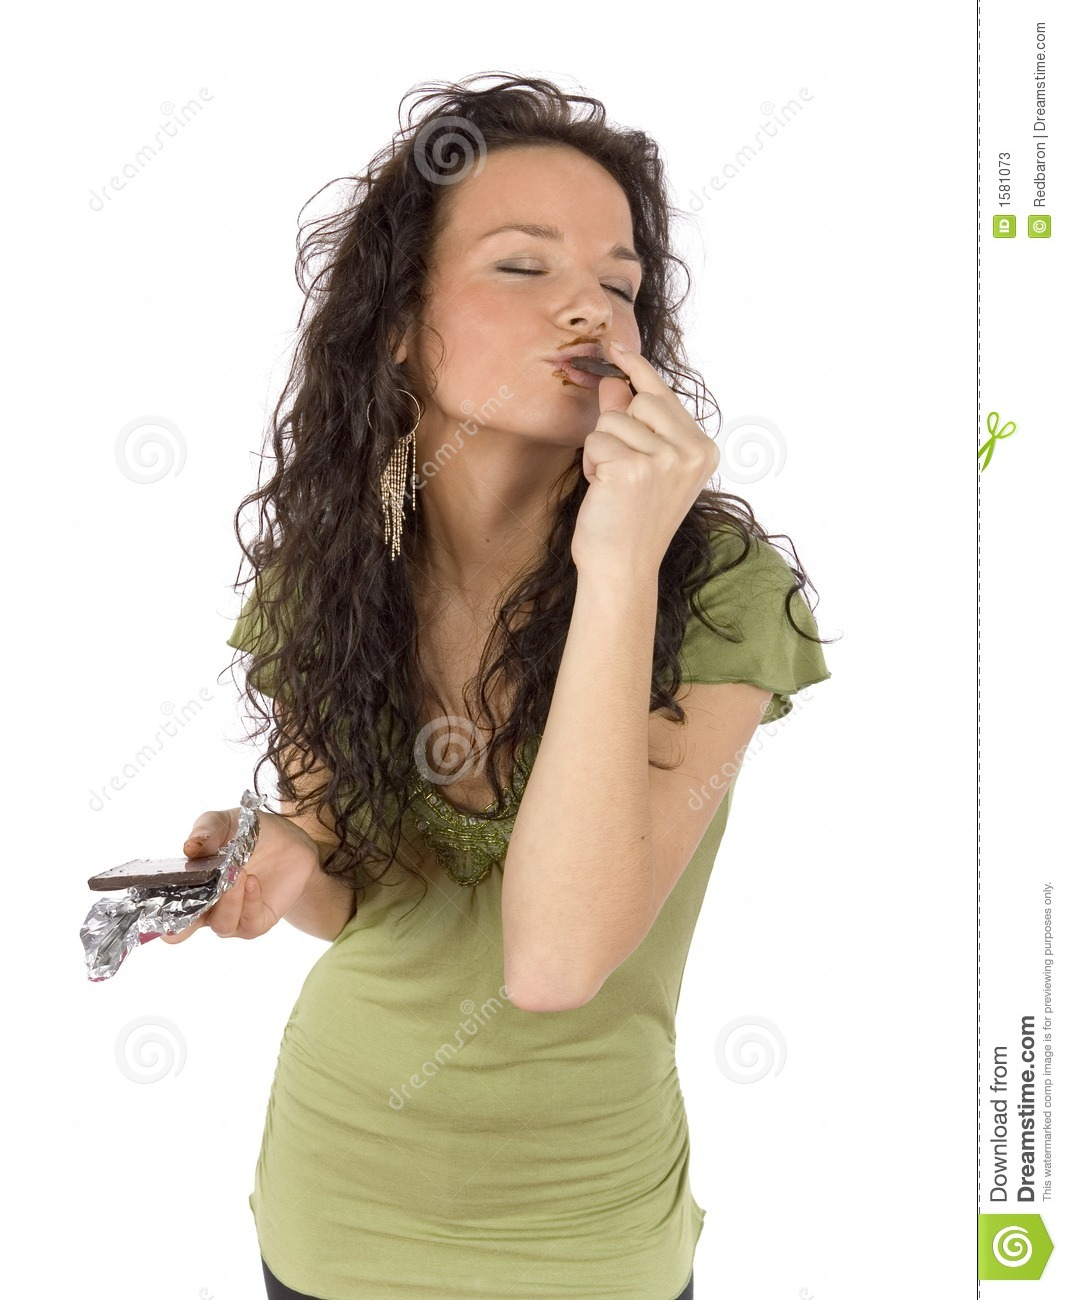 Woman eating chocolate with great pleasure